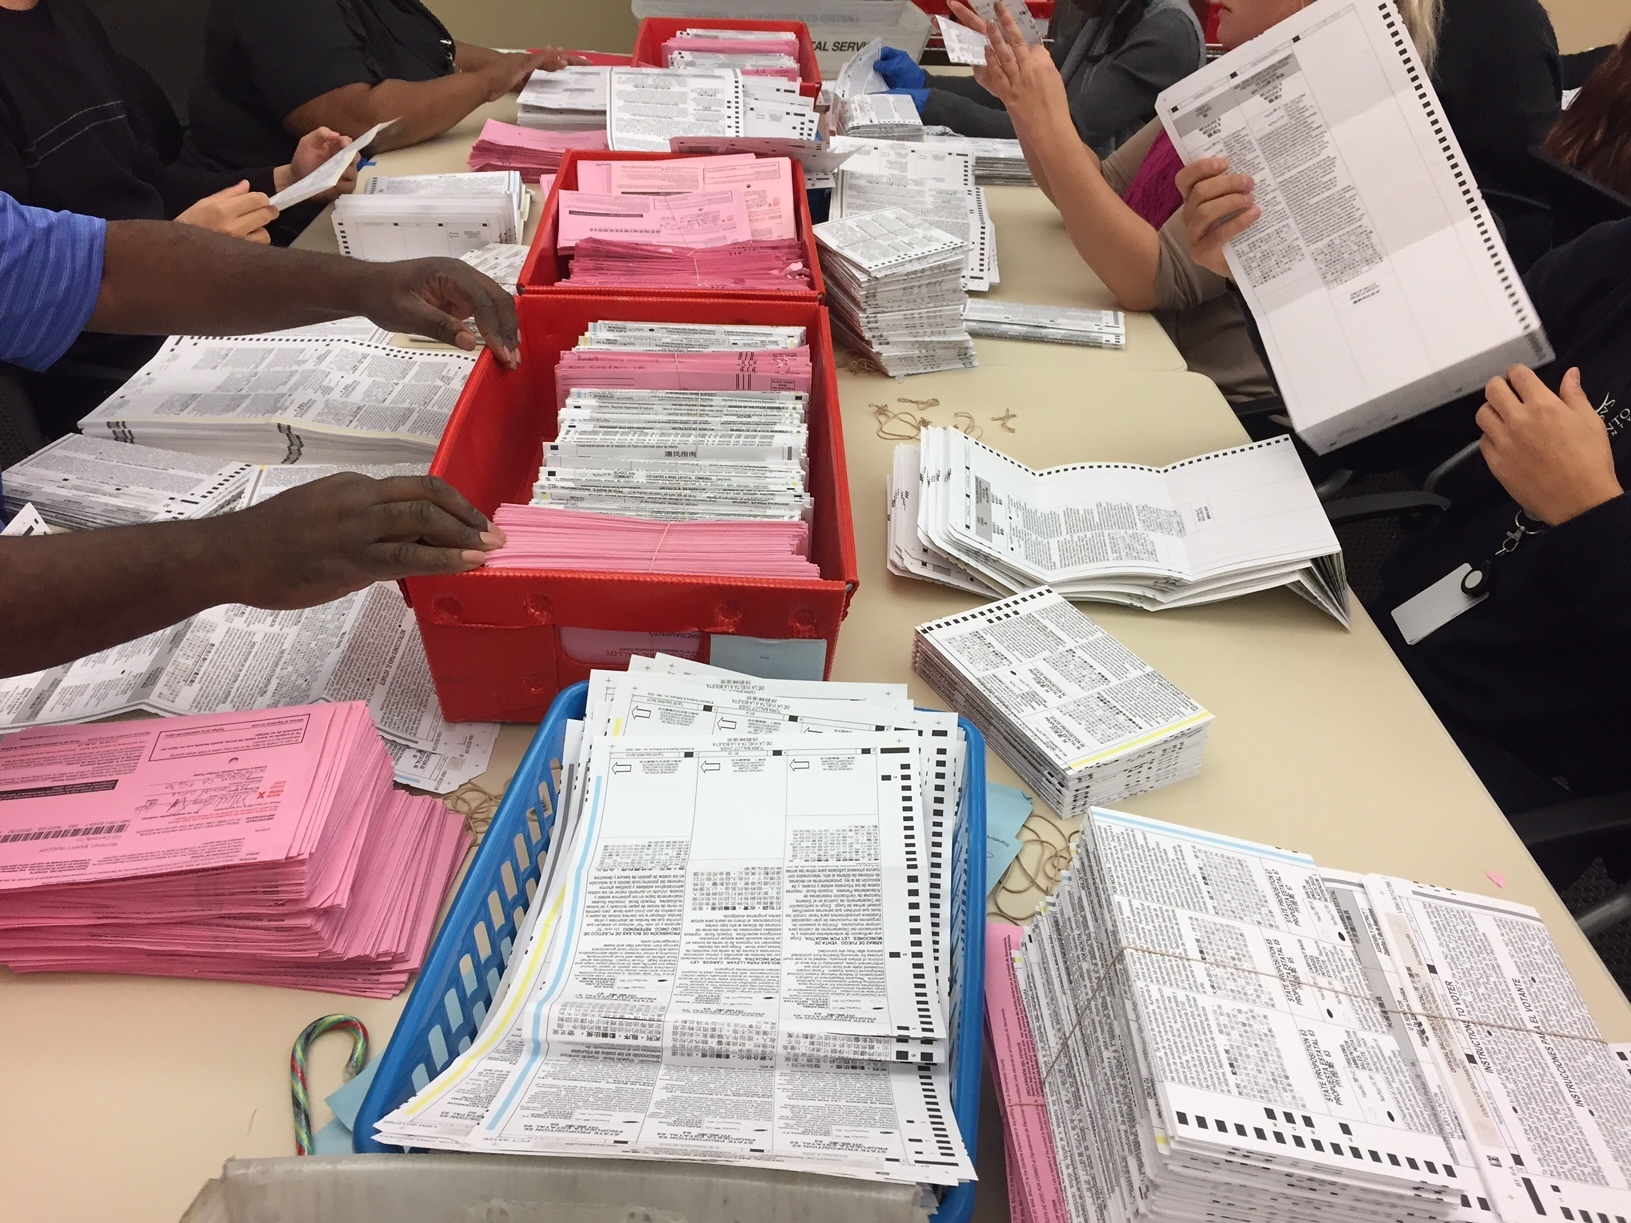 Election workers sort through unprocessed vote-by-mail ballots at the Sacramento County Registrar of Voters office on Monday. (Photo by Ben Adler/Capital Public Radio)